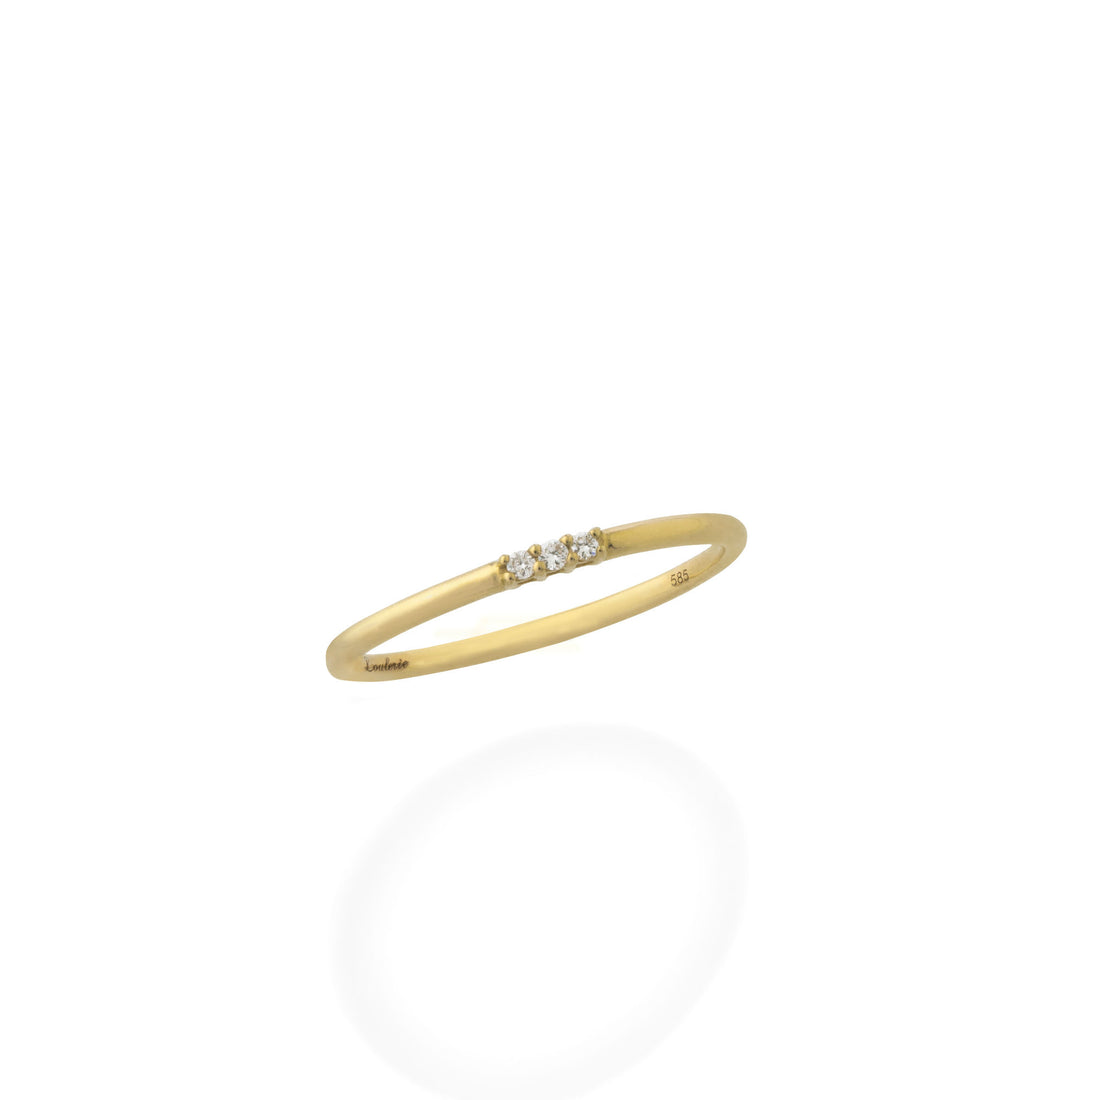 Loulerie 3 White Diamond 14k Yellow Gold Ring